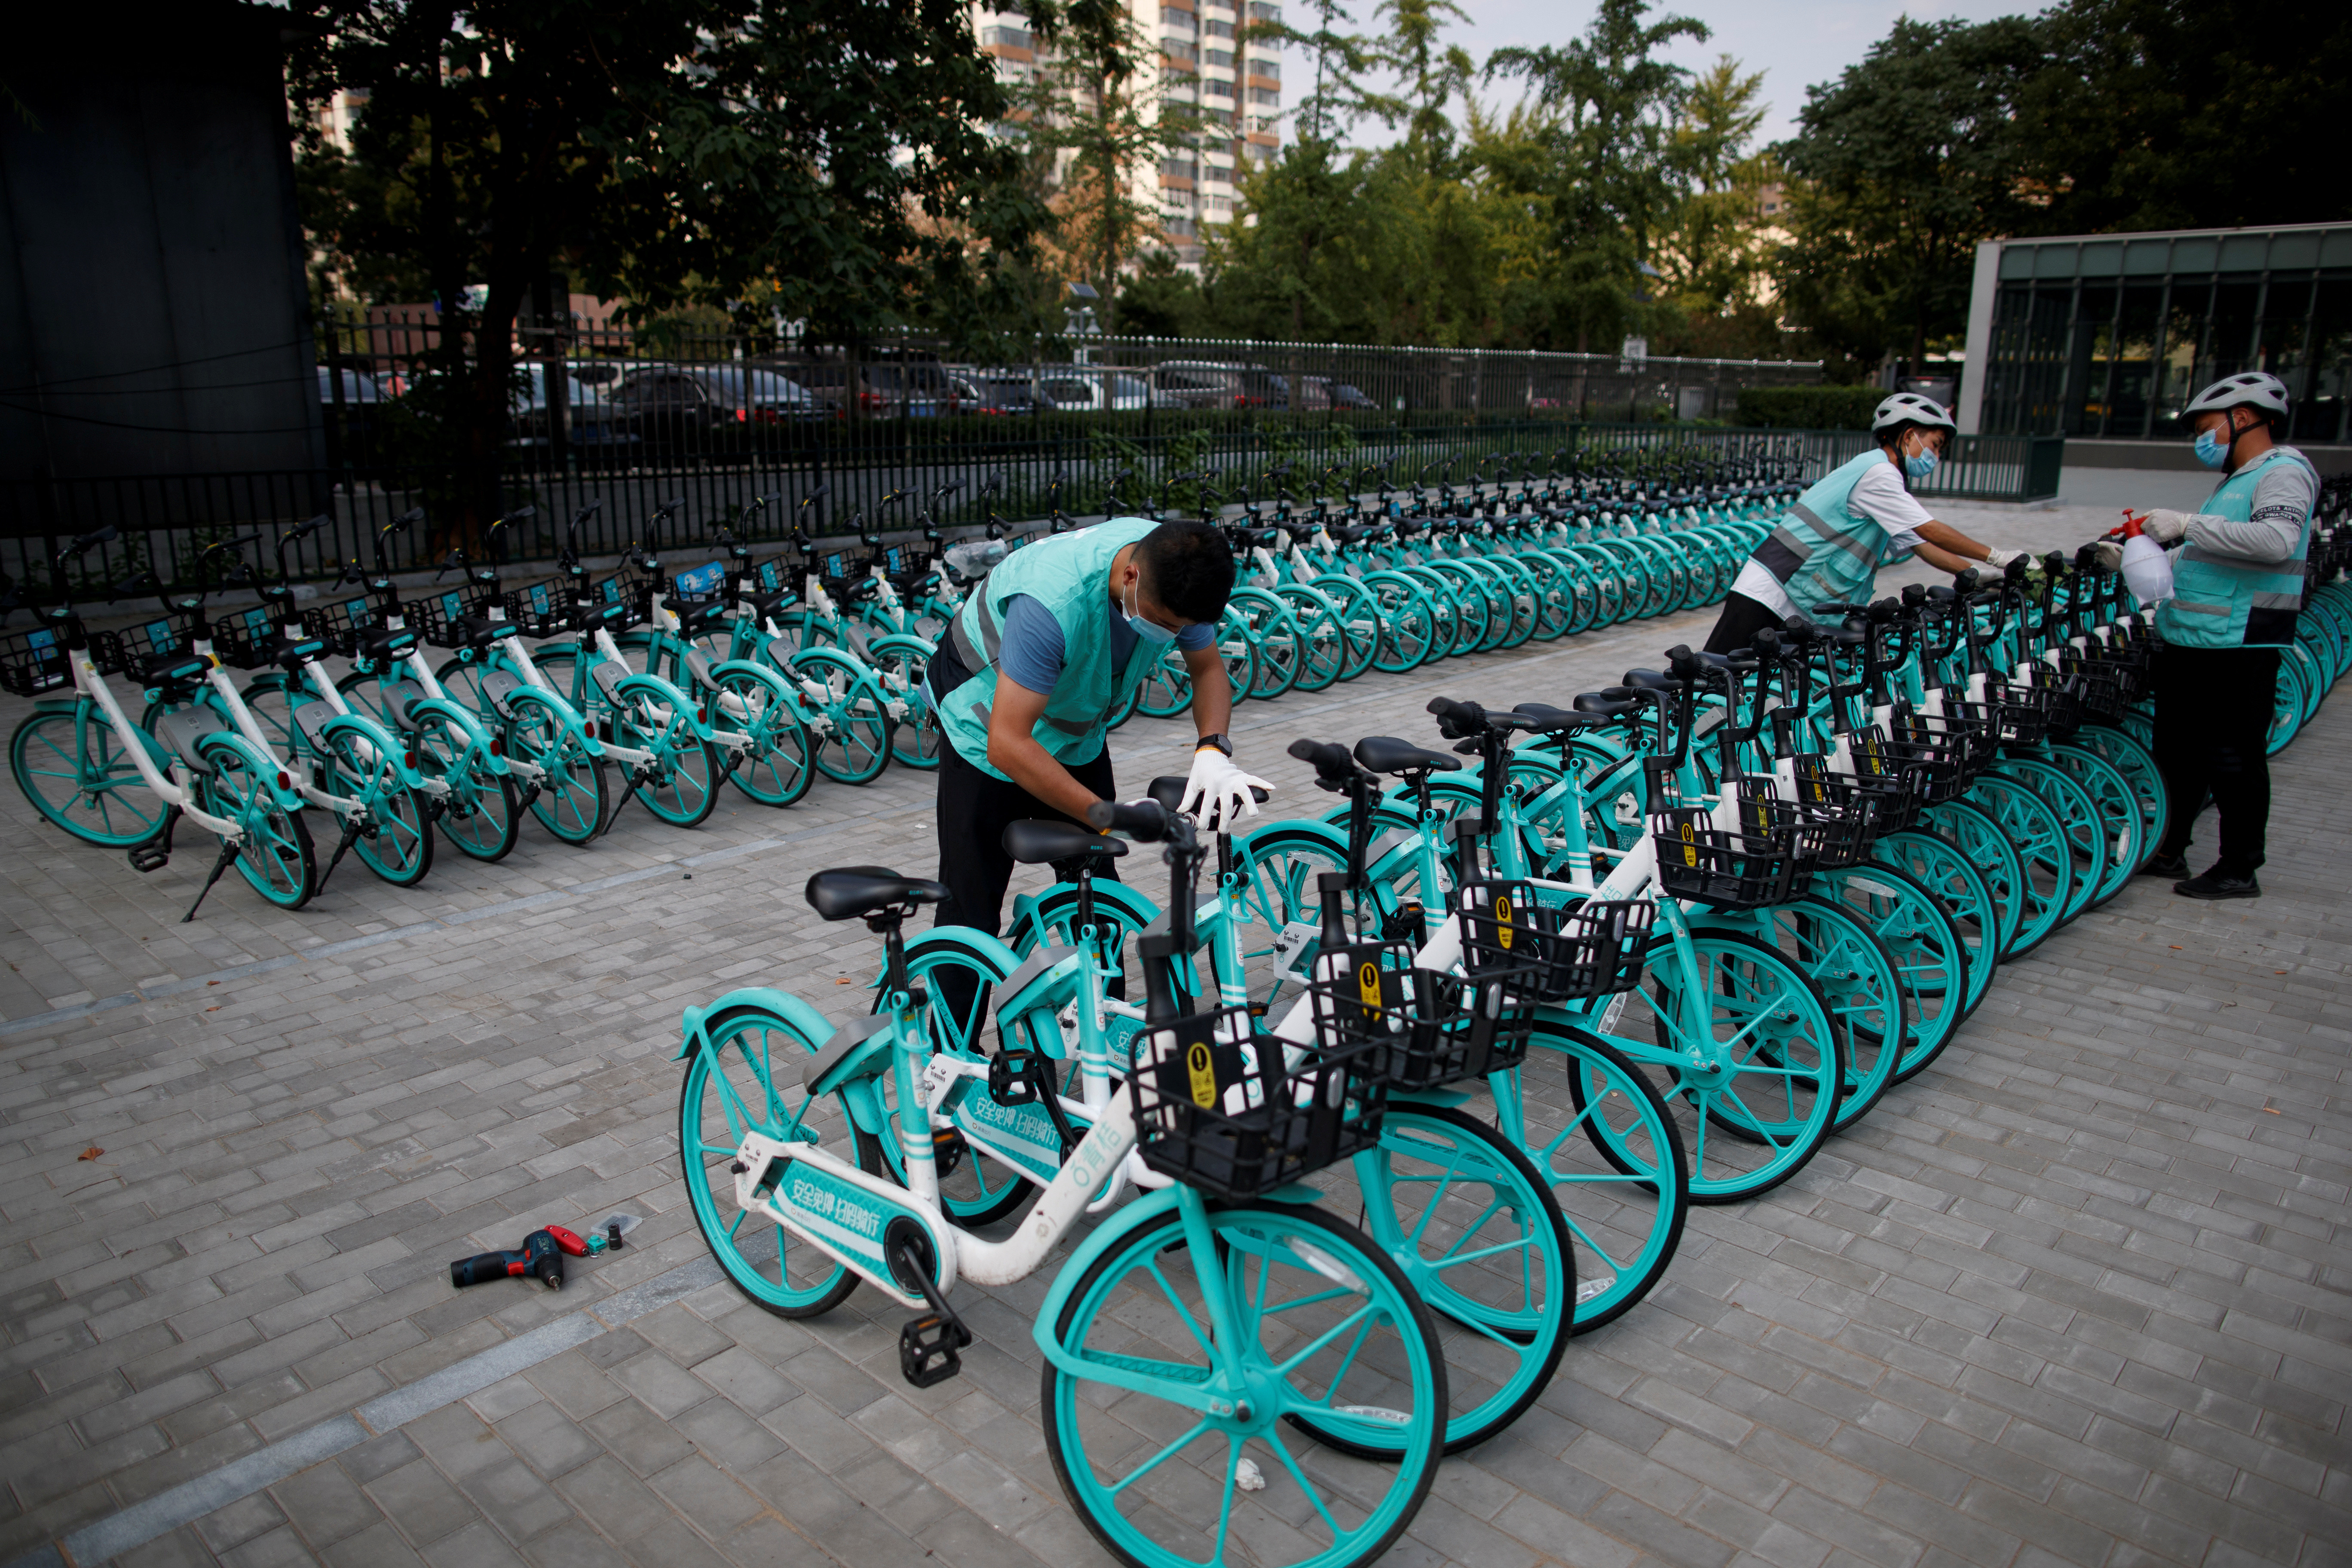 Staff members repair and disinfect Didi shared bicycles outside a subway station, following an outbreak of the coronavirus disease (COVID-19), in Beijing, China August 7, 2020. REUTERS/Thomas Peter   REFILE - REMOVING ERRONEOUS INFORMATION - RC2X8I9Y4IZA